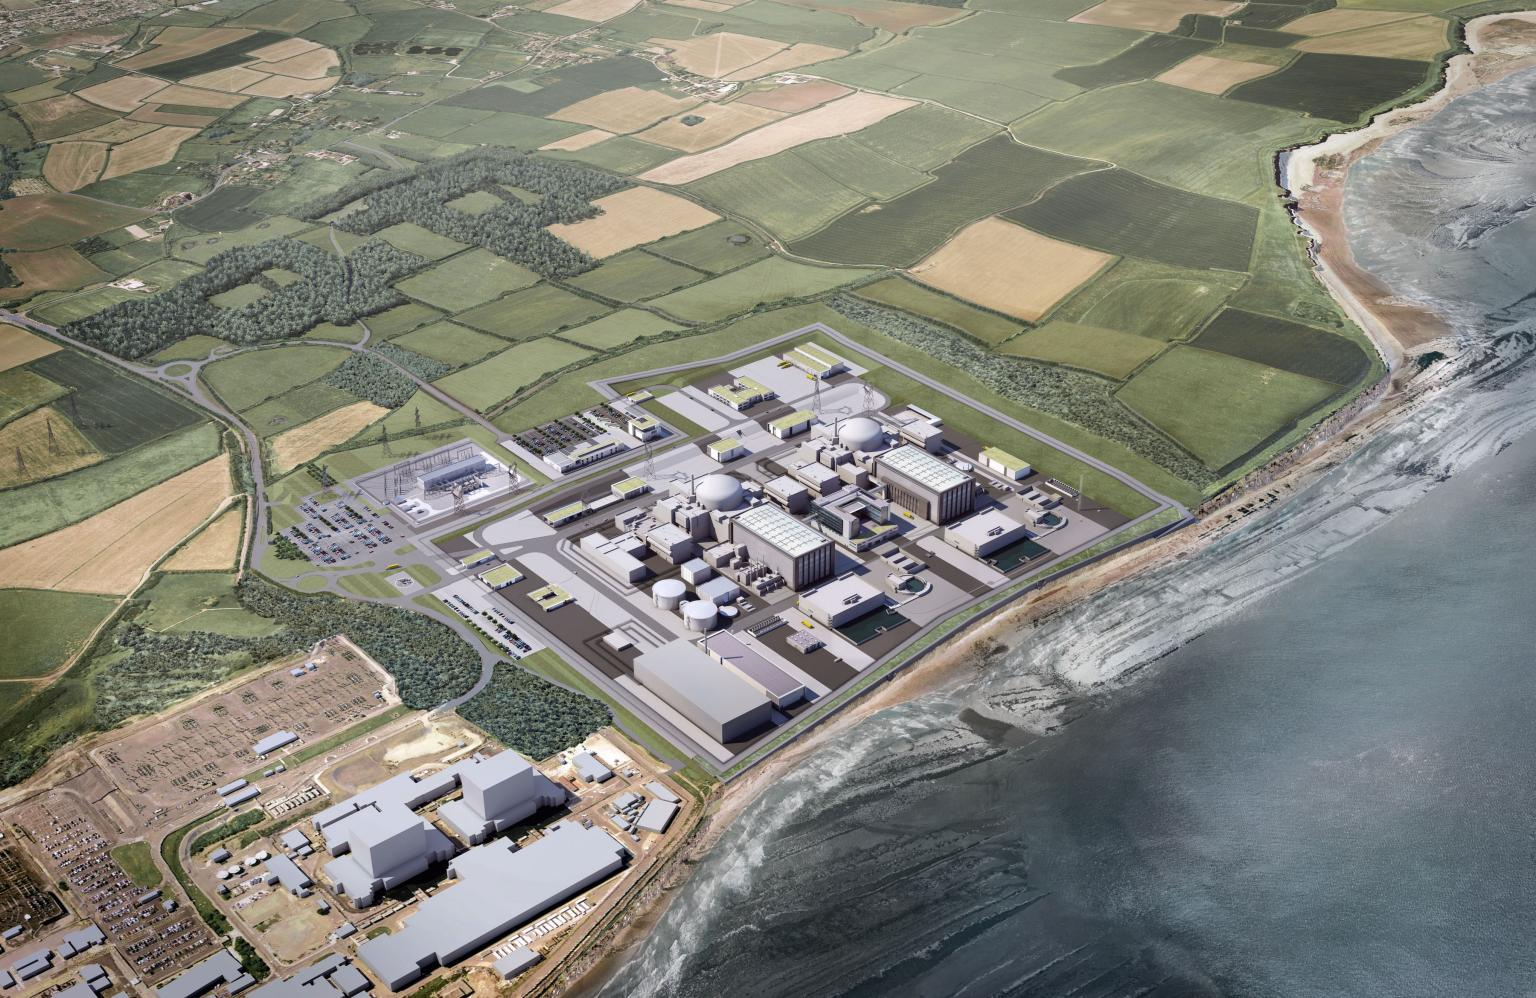 An artists' impression of Hinckley Point C